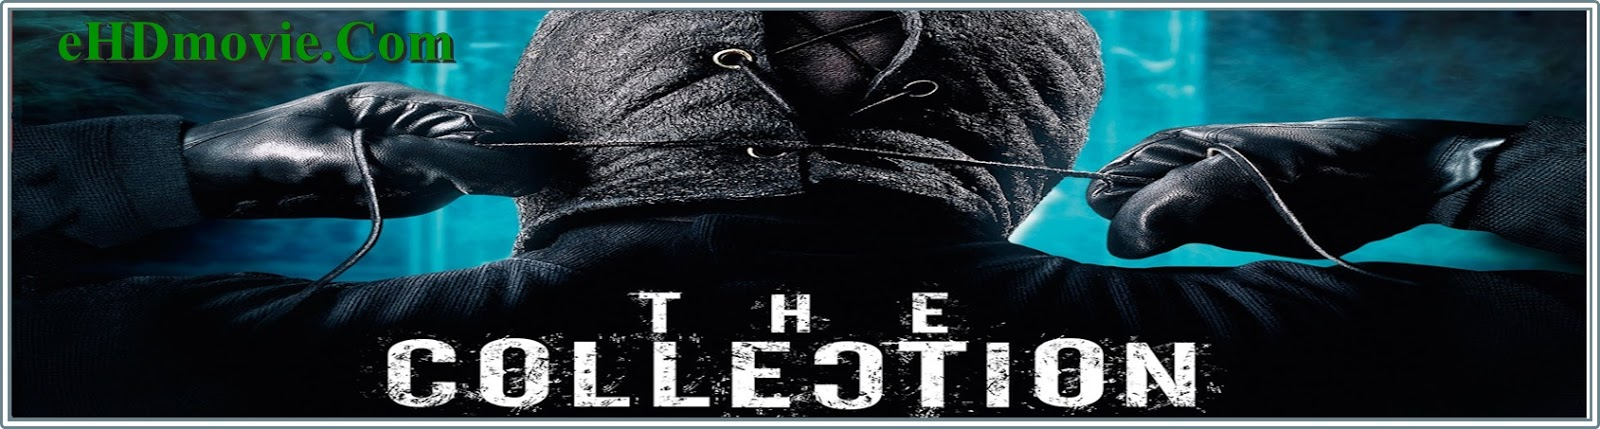 The Collection 2012 Full Movie English 720p - 480p ORG BRRip 300MB - 750MB ESubs Free Download